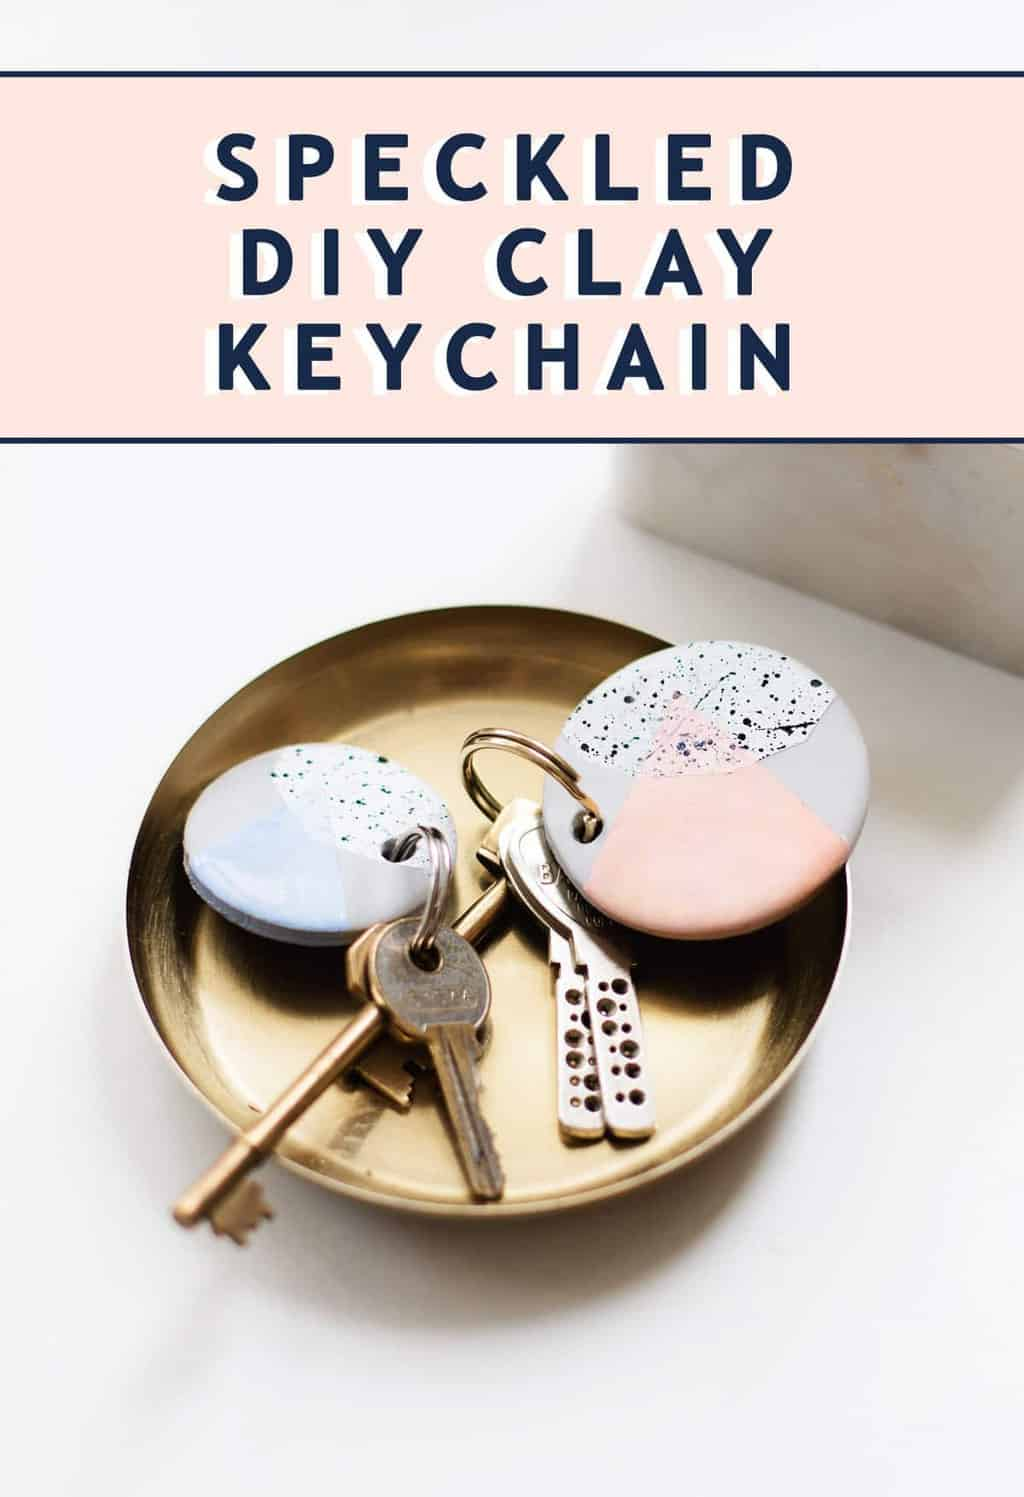 photo of how to make a Speckled DIY Clay Keychain by top Houston lifestyle blogger Ashley Rose of Sugar & Cloth